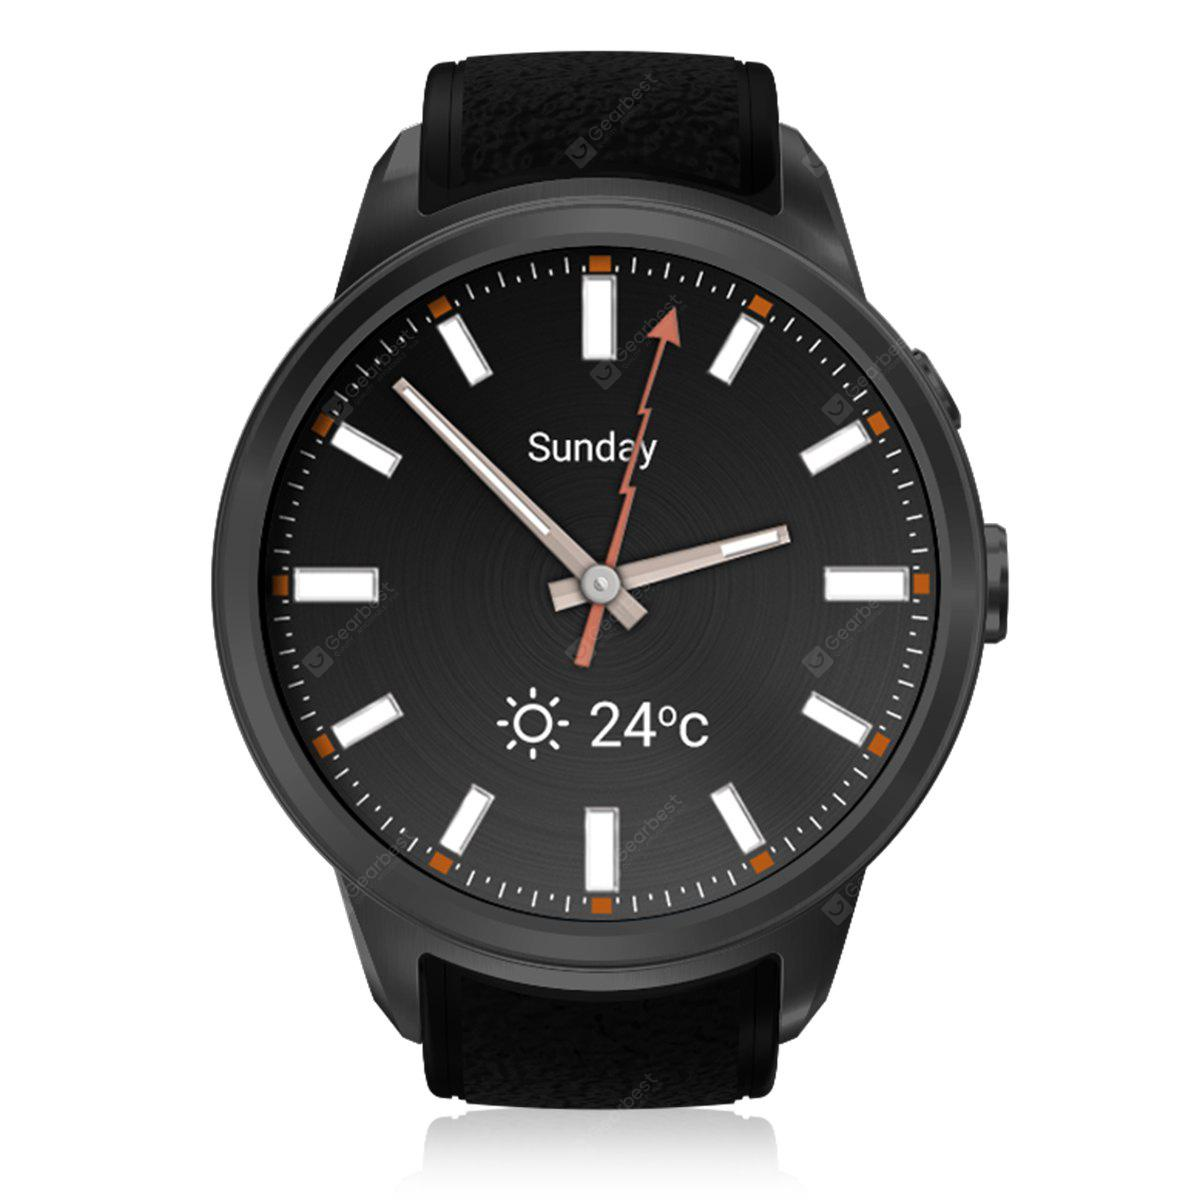 Diggro DI01 Smart Watch Android 5.1 IP67 MTK6580 1GB/16GB Nano SIM 3G WIFI 2.0MP Camera Call Heart Rate Monitor Pedometer Weather Health Reminder for Android IOS